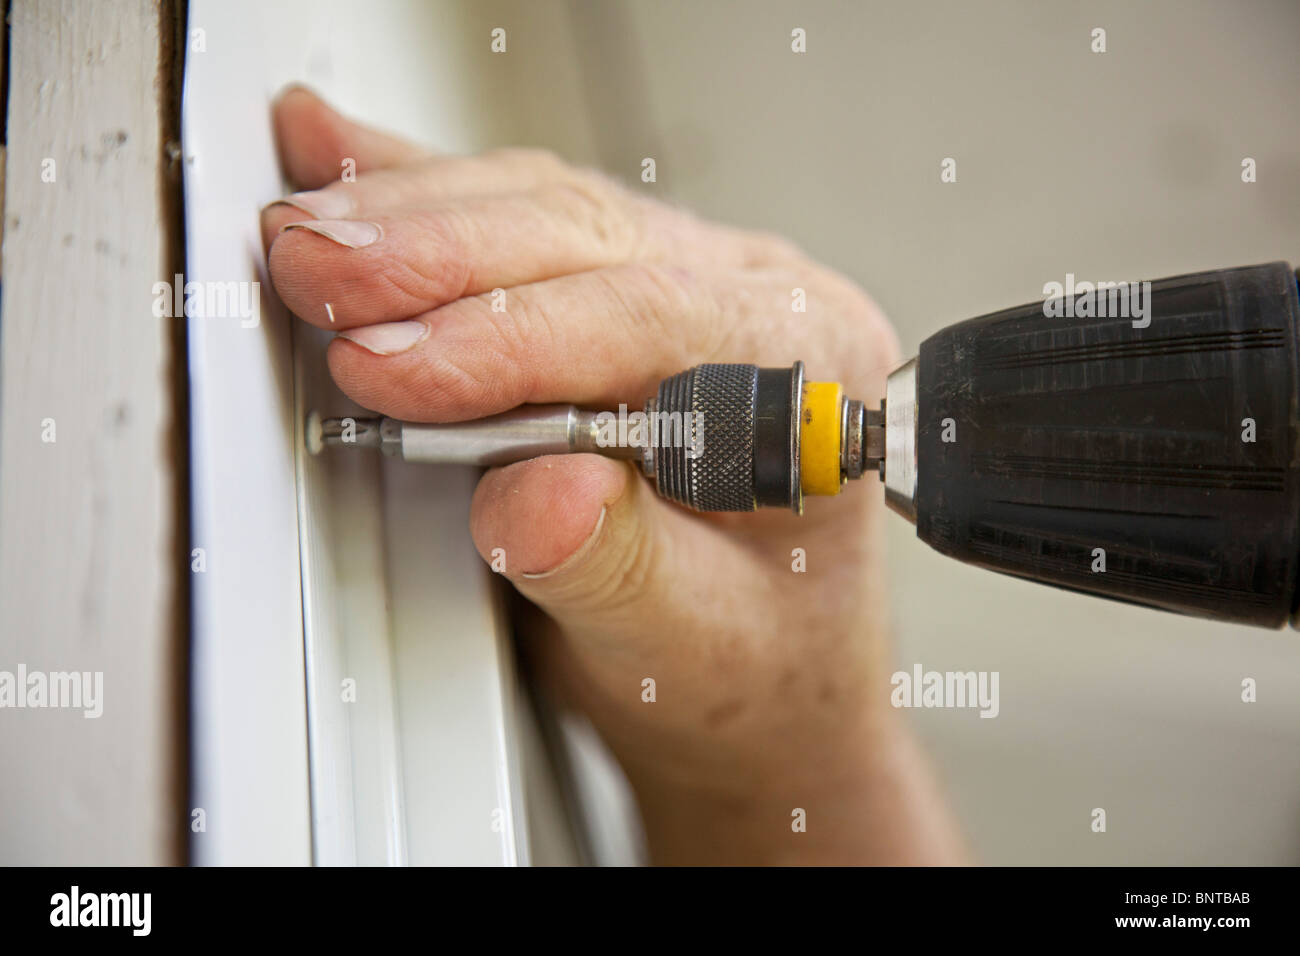 Prairieville, Michigan - A man uses a cordless drill to install a window on a rural cottage. - Stock Image